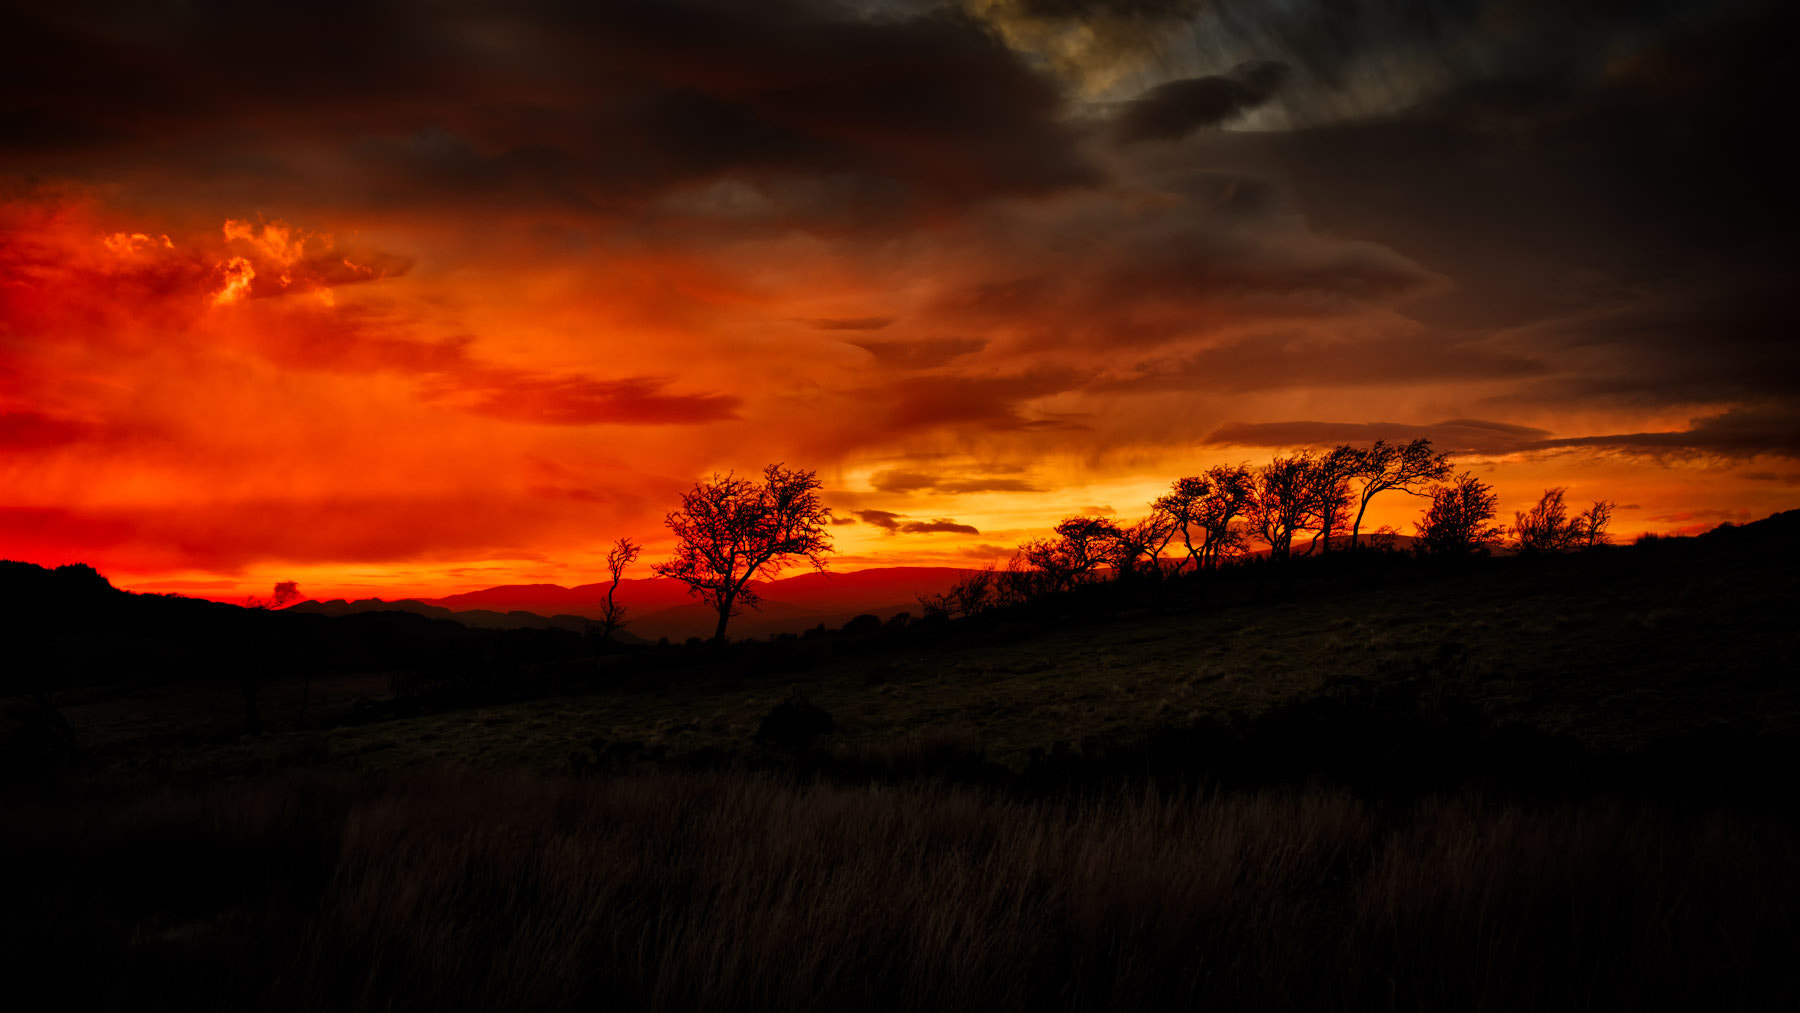 Photograph A Welsh Savanna Sunset by Mark Illsley on 500px